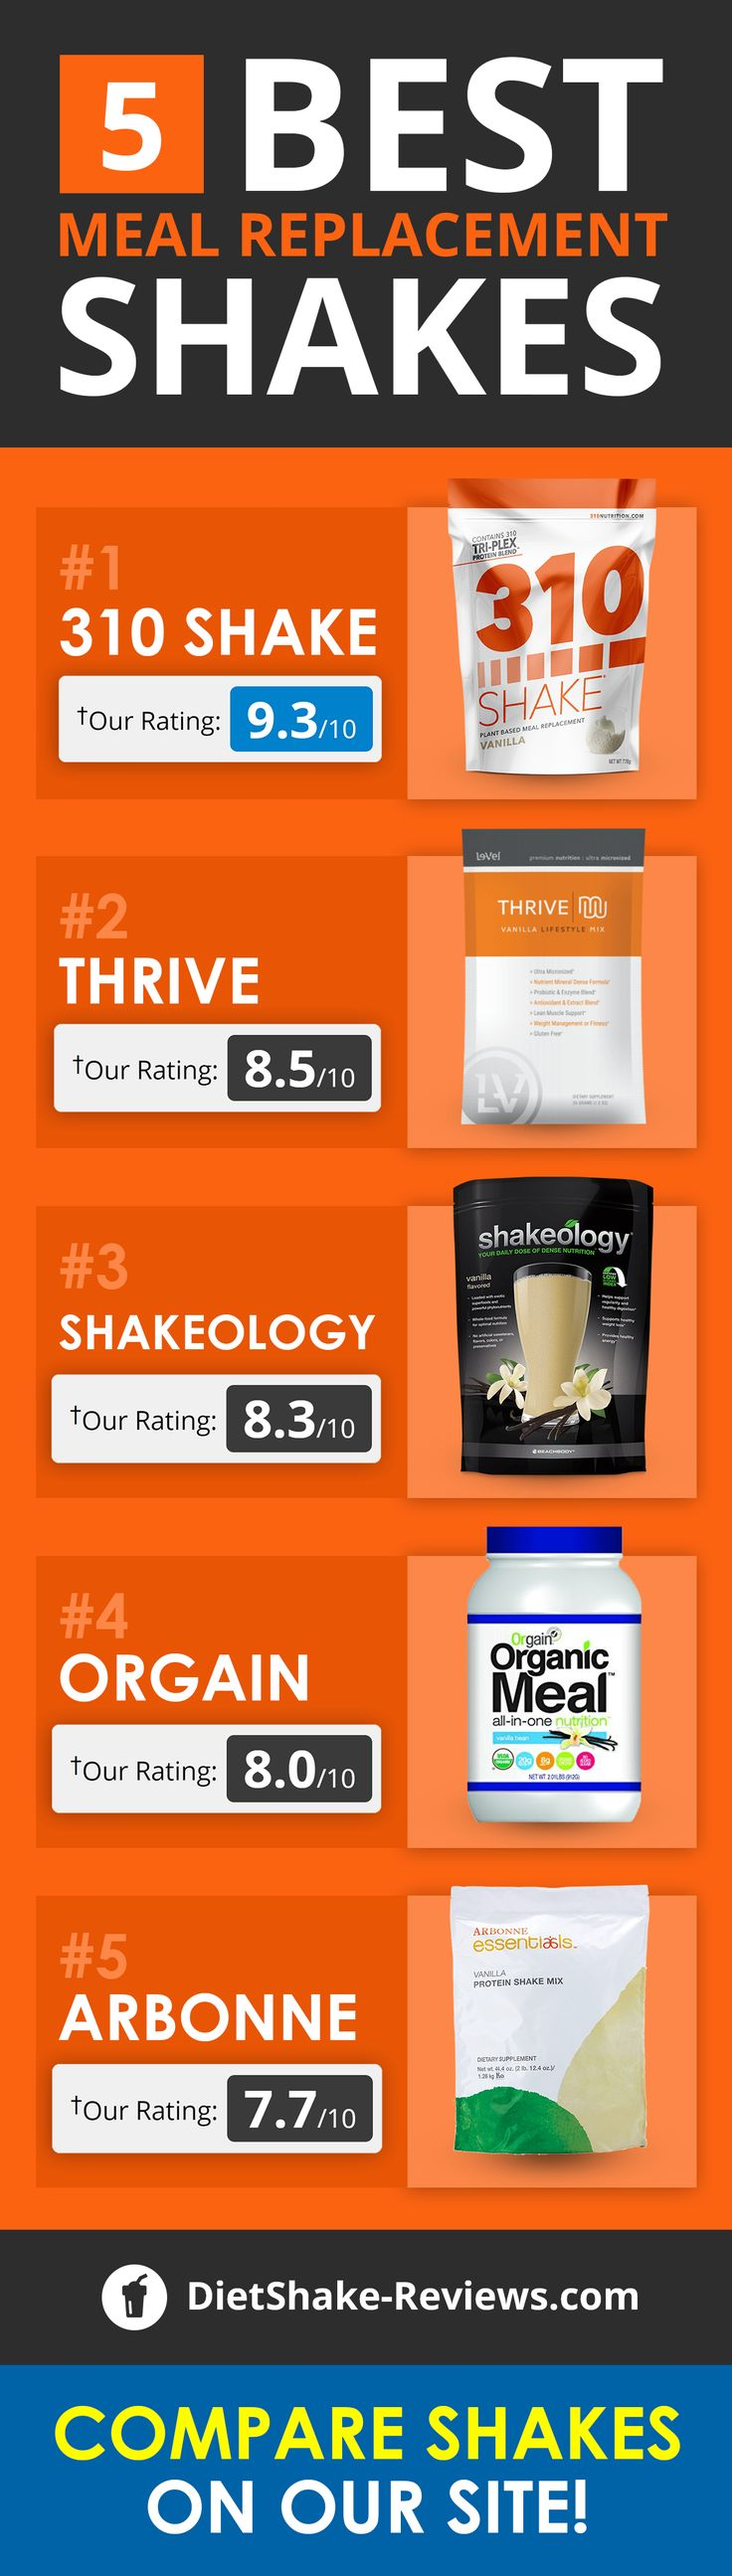 Visit The Site To Compare 10+ Meal Replacement Shakes!